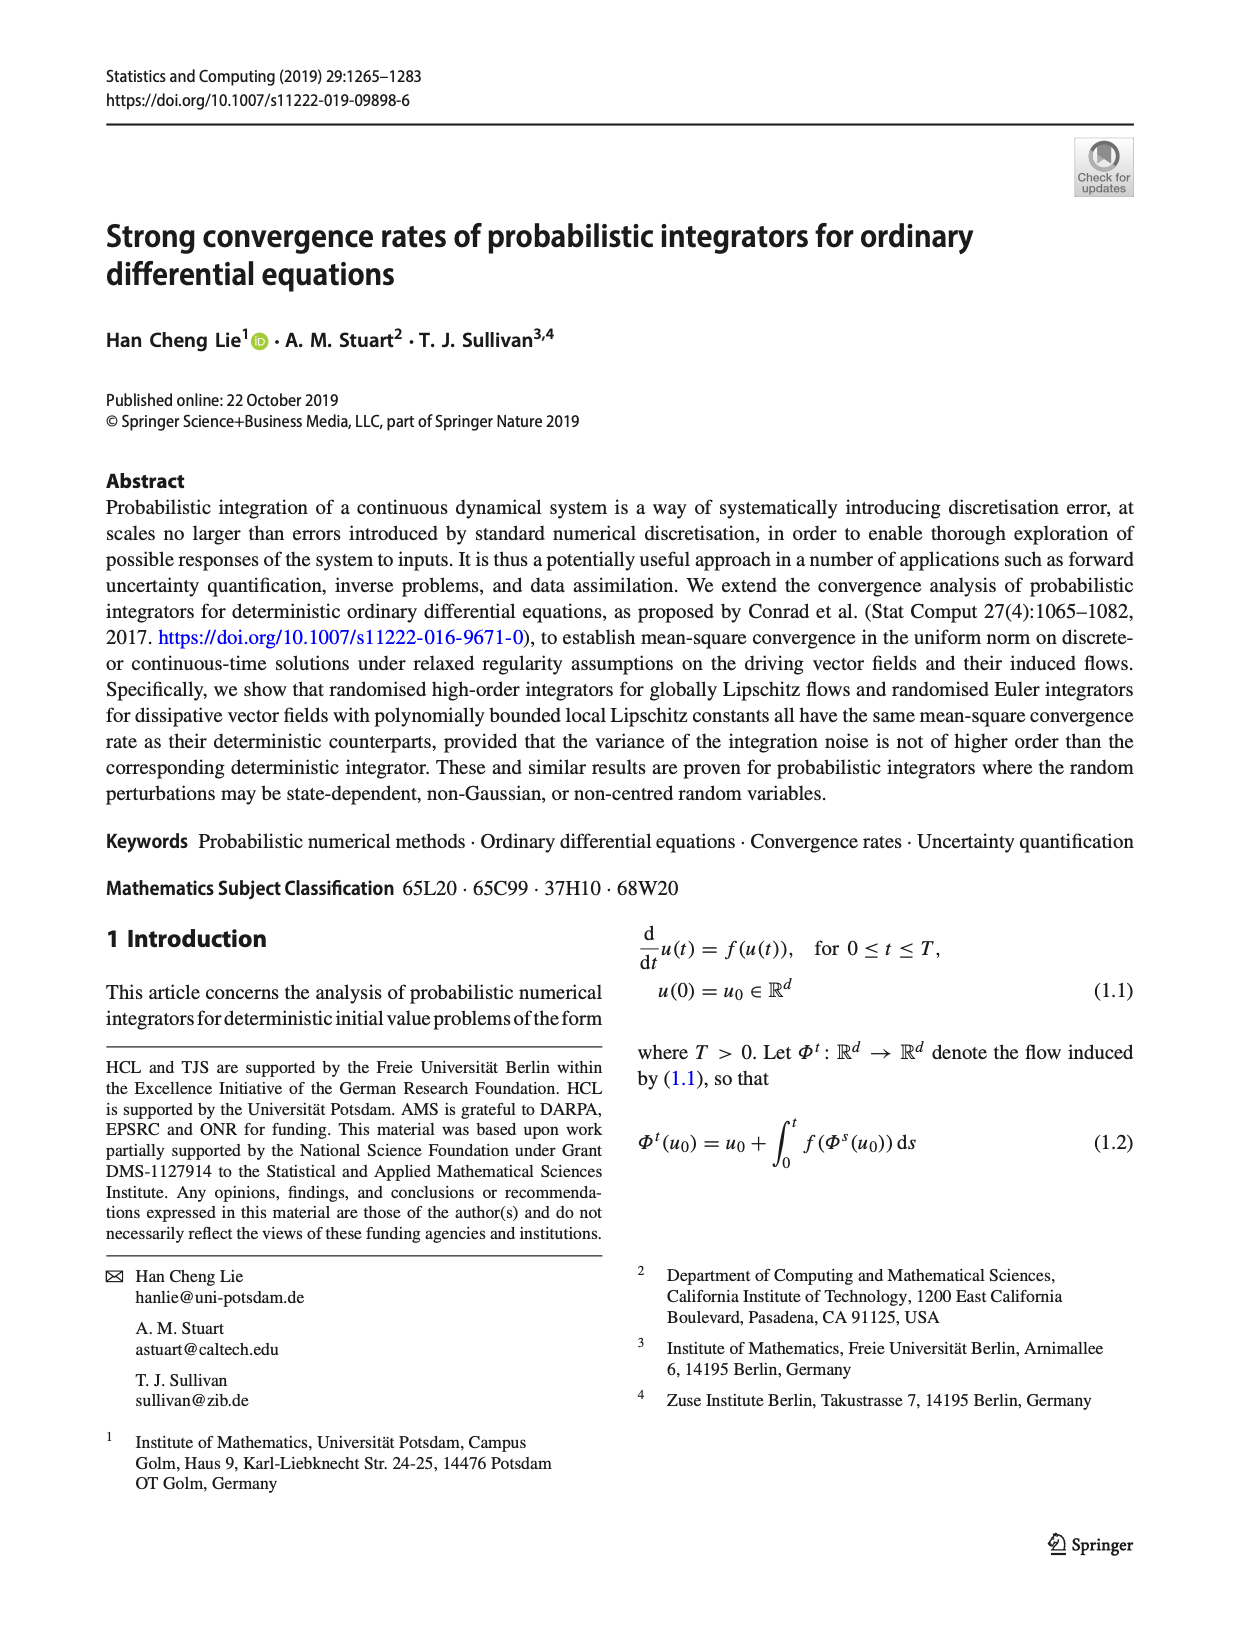 Strong convergence rates of probabilistic integrators for ordinary differential equations